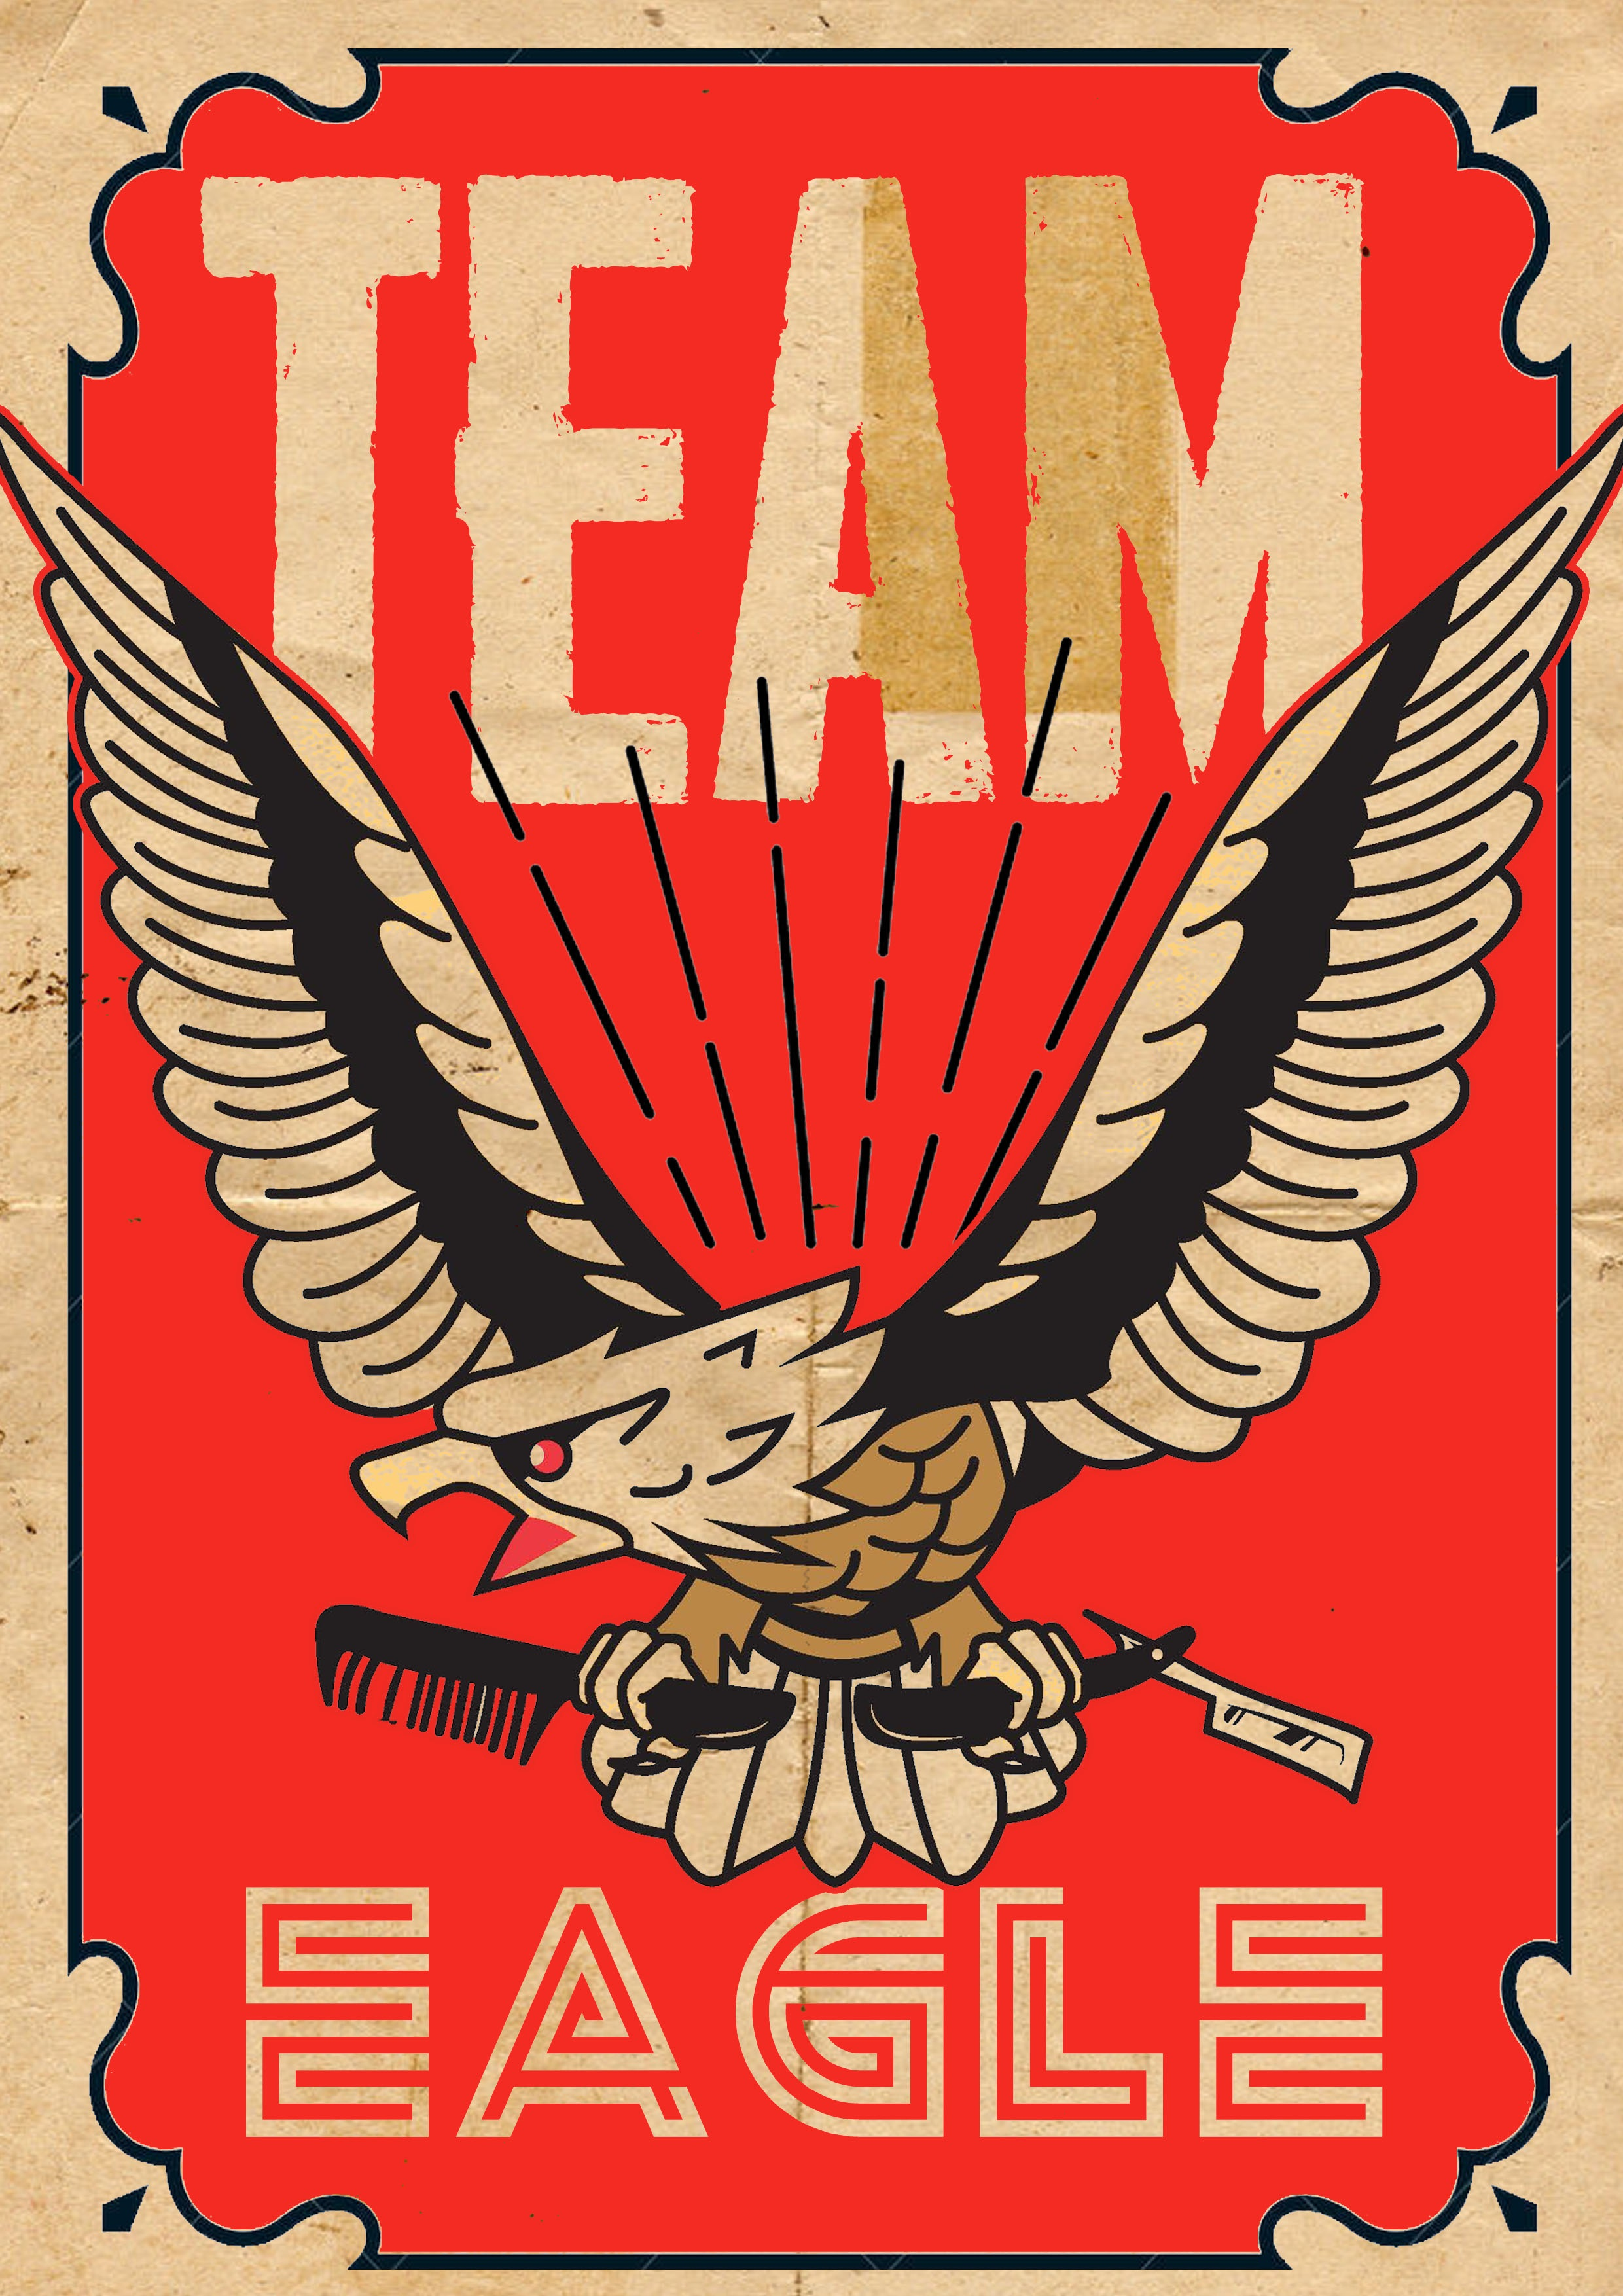 """TEAM EAGLE - In 2015, 4 people who never expected or even considered leadership """"their thing"""" became business owners and """"bosses"""" to a growing number of amazing and talented people. Recognizing the responsibility being placed on their shoulders, that team of owners went out and bought their first leadership notebooks to begin mapping processes and procedures to protect the staff of Chop. Yes they were cheesy notebooks with airbrushed eagles on them (we were on a budget). And that was the birth of the Team Eagle core value. Three years later, team eagle has trickled down to every member of Chop. It's what keeps us looking out for each other, for the shop, and for our customers. It's what keeps us moving even in the weeds with smiles on our faces knowing we are in this together. It's what sets us apart!"""